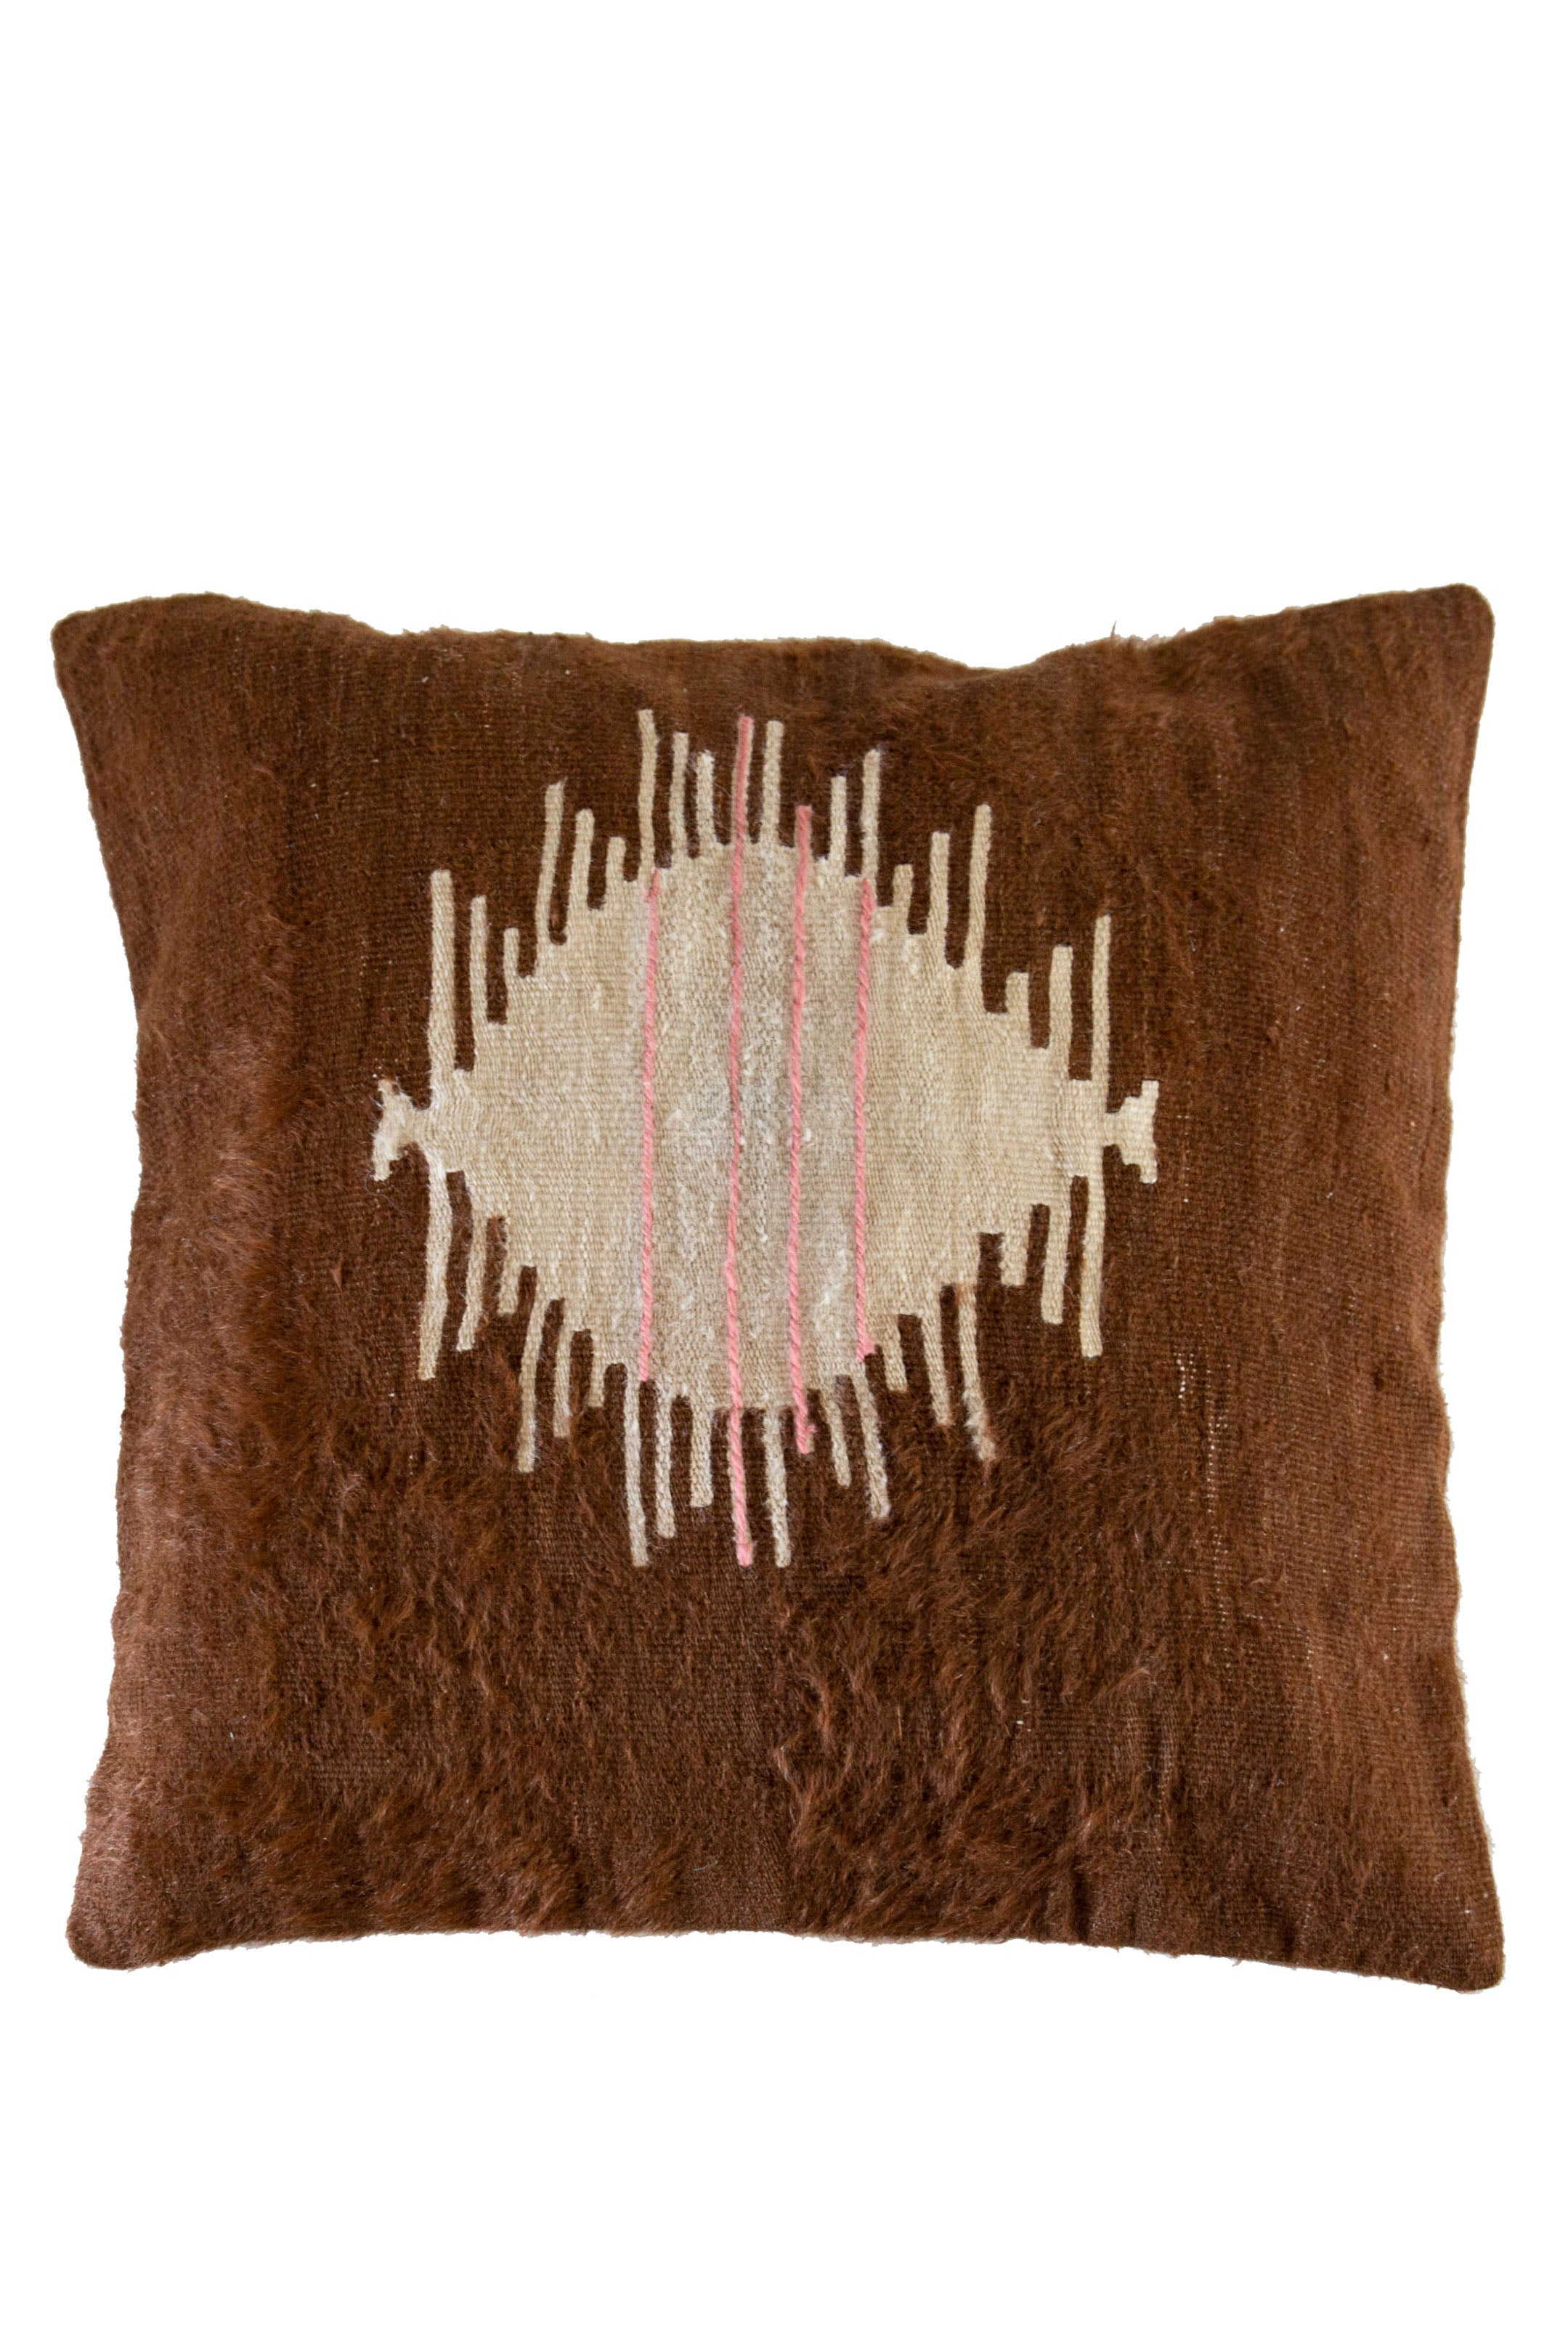 Unwritten Turkish Kilim Cushion